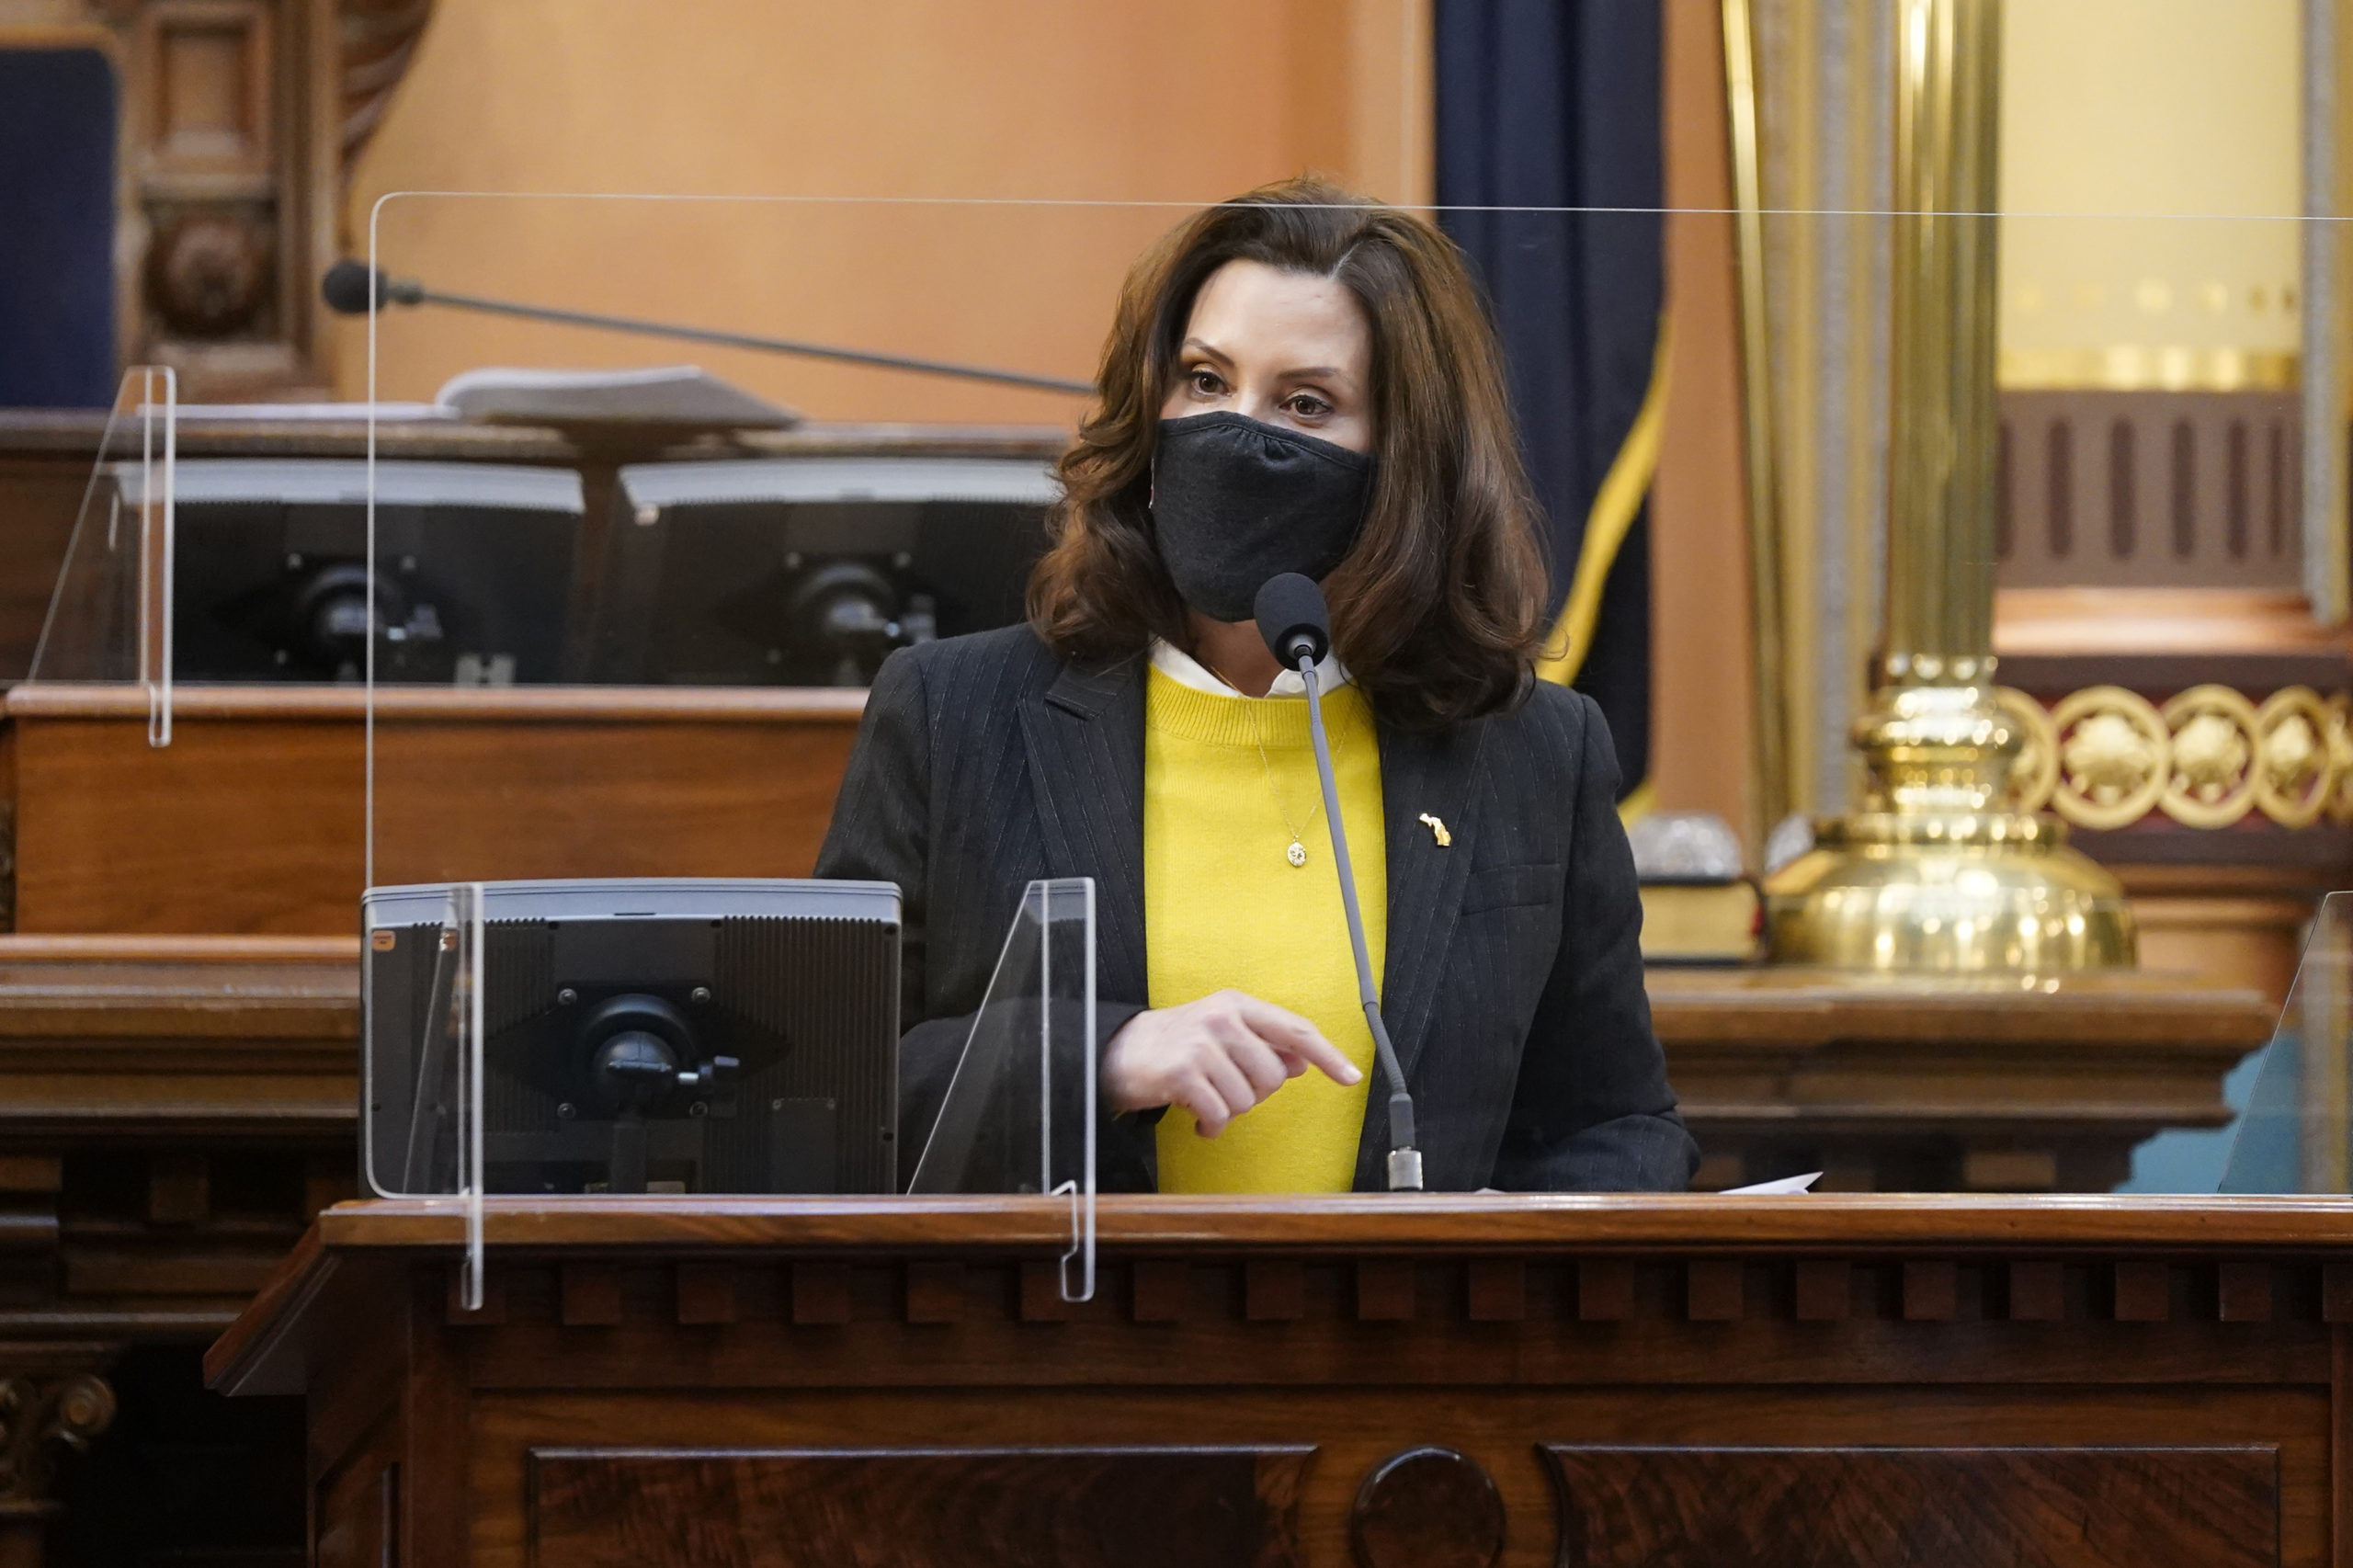 LANSING, MICHIGAN - DECEMBER 14: Michigan Gov. Gretchen Whitmer addresses the state's Electoral College at the state Capitol on December 14, 2020 in Lansing, Michigan. Michigan's 16 electors met this afternoon to certify the electoral college vote. (Photo by Carlos Osorio-Pool/Getty Images)